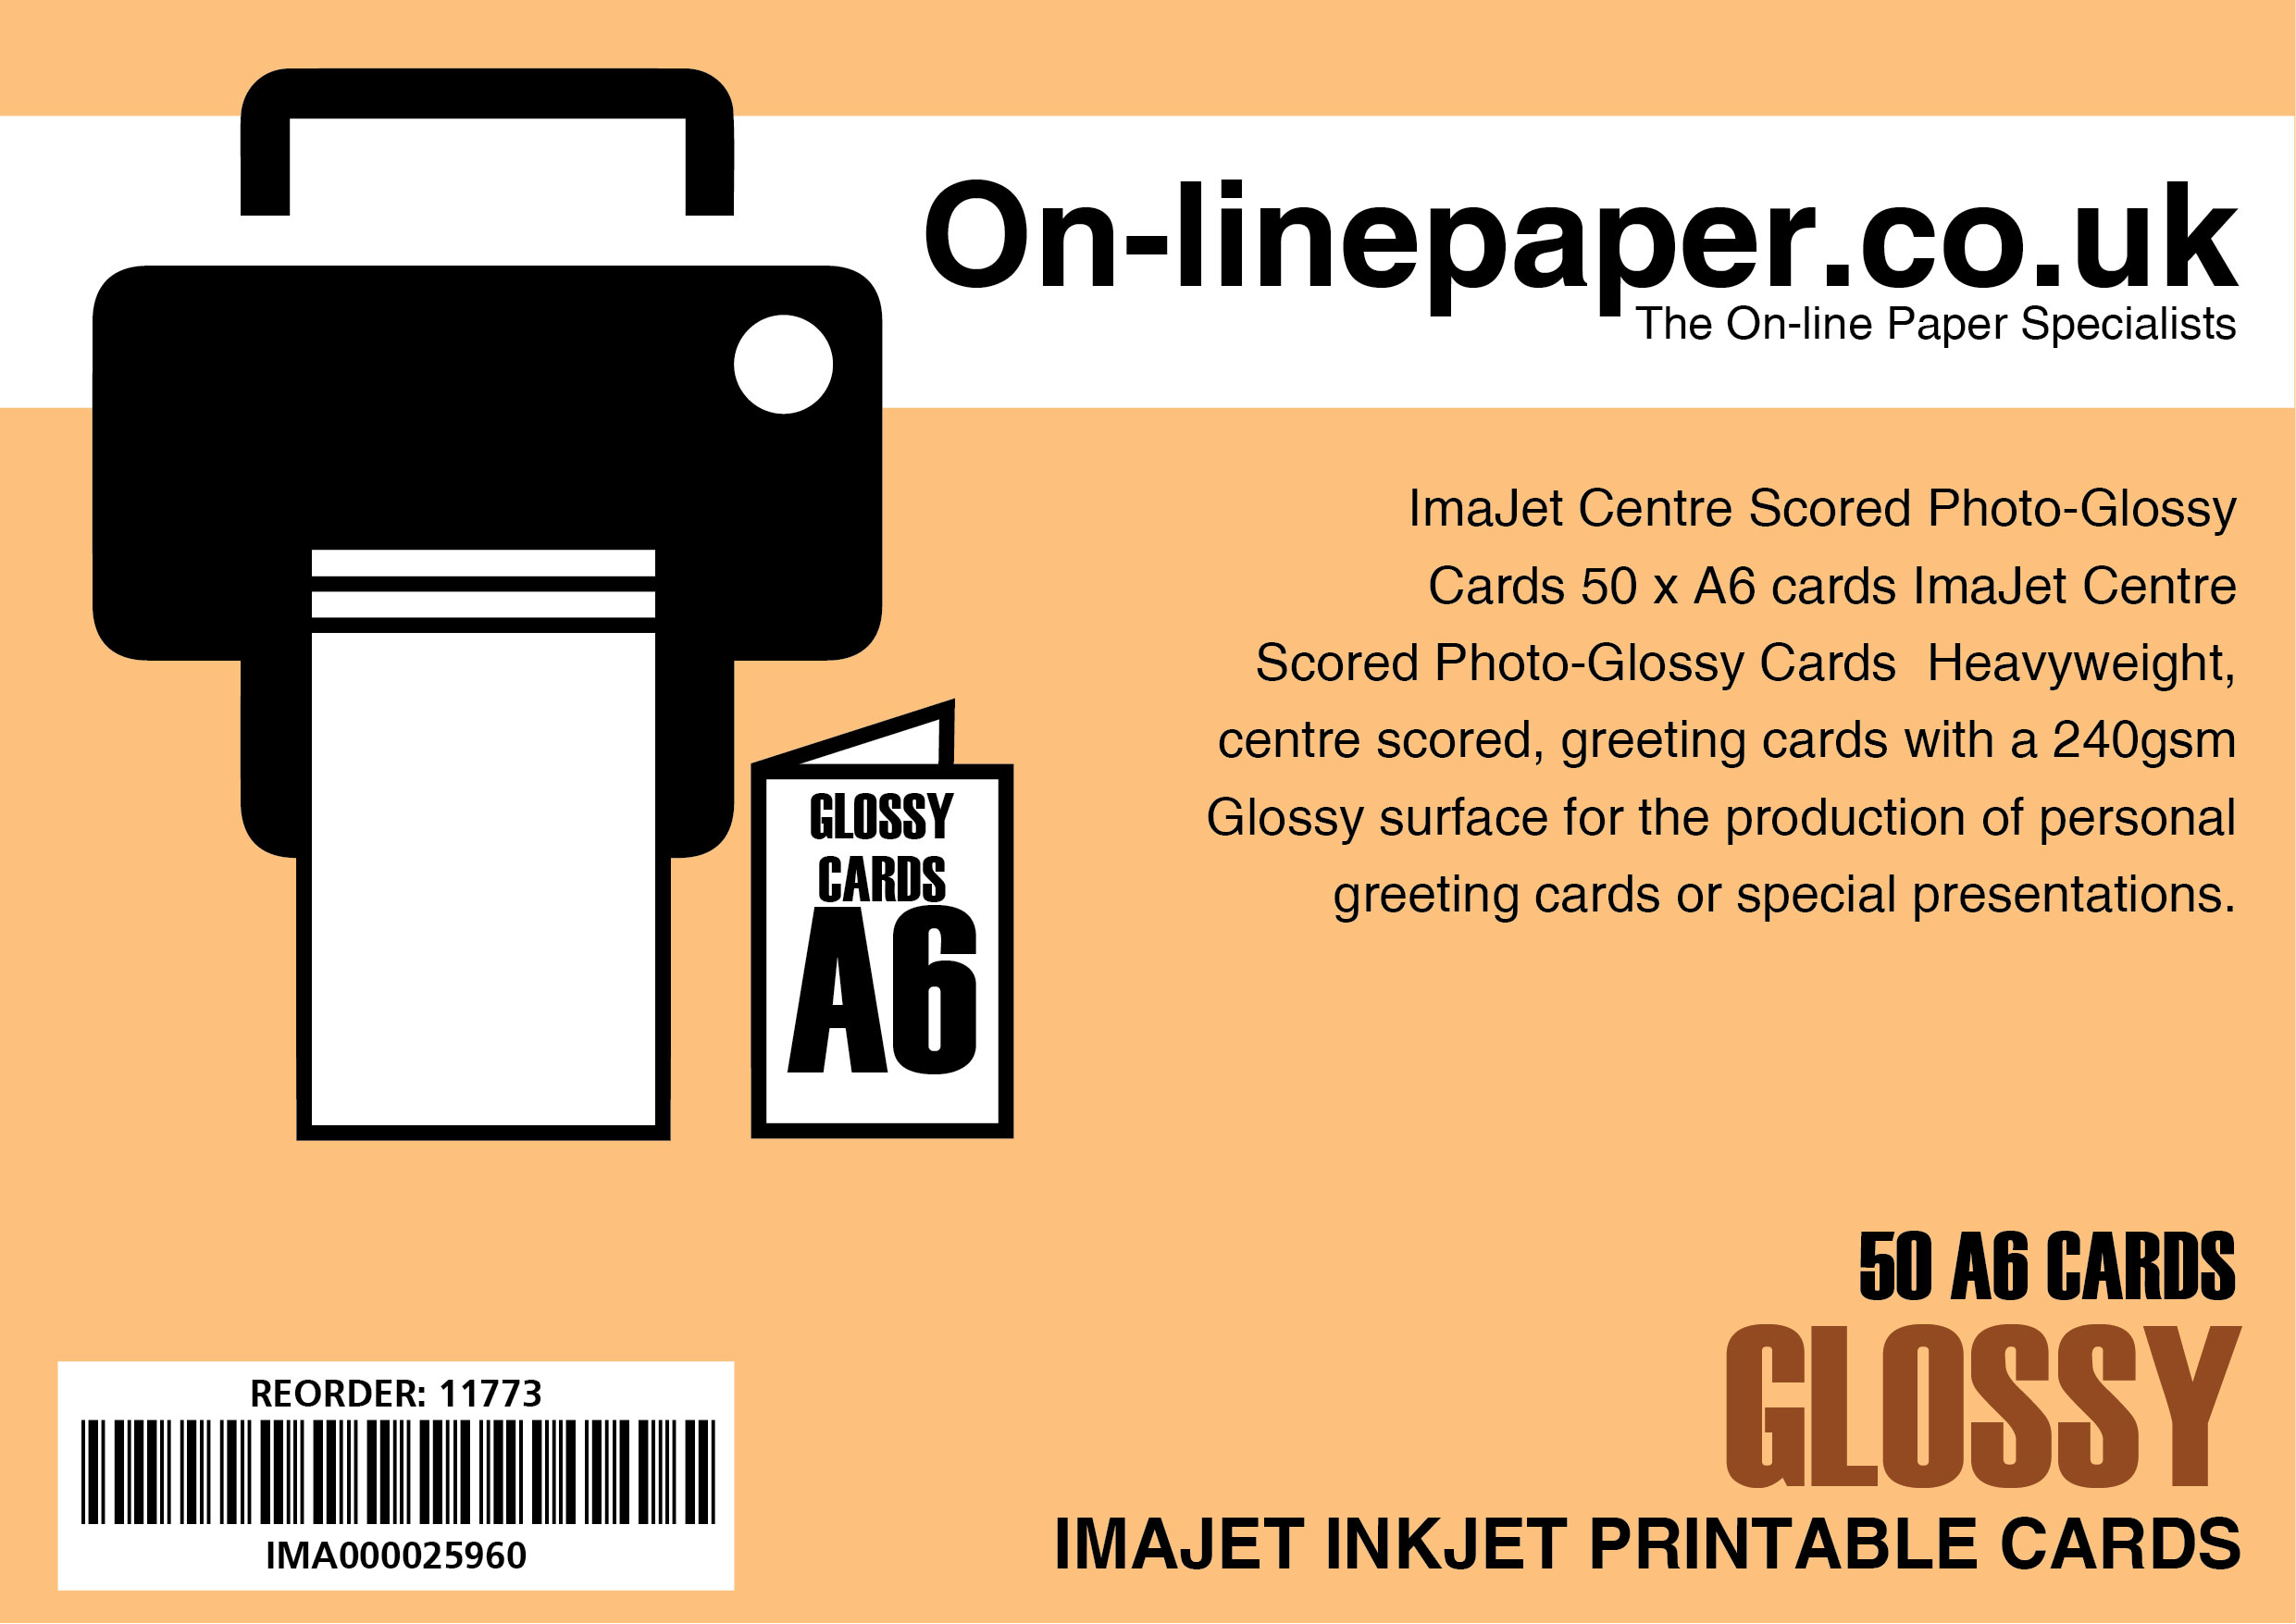 ImaJet Centre Scored Photo Gloss Cards 50 x A5 cards --> A6